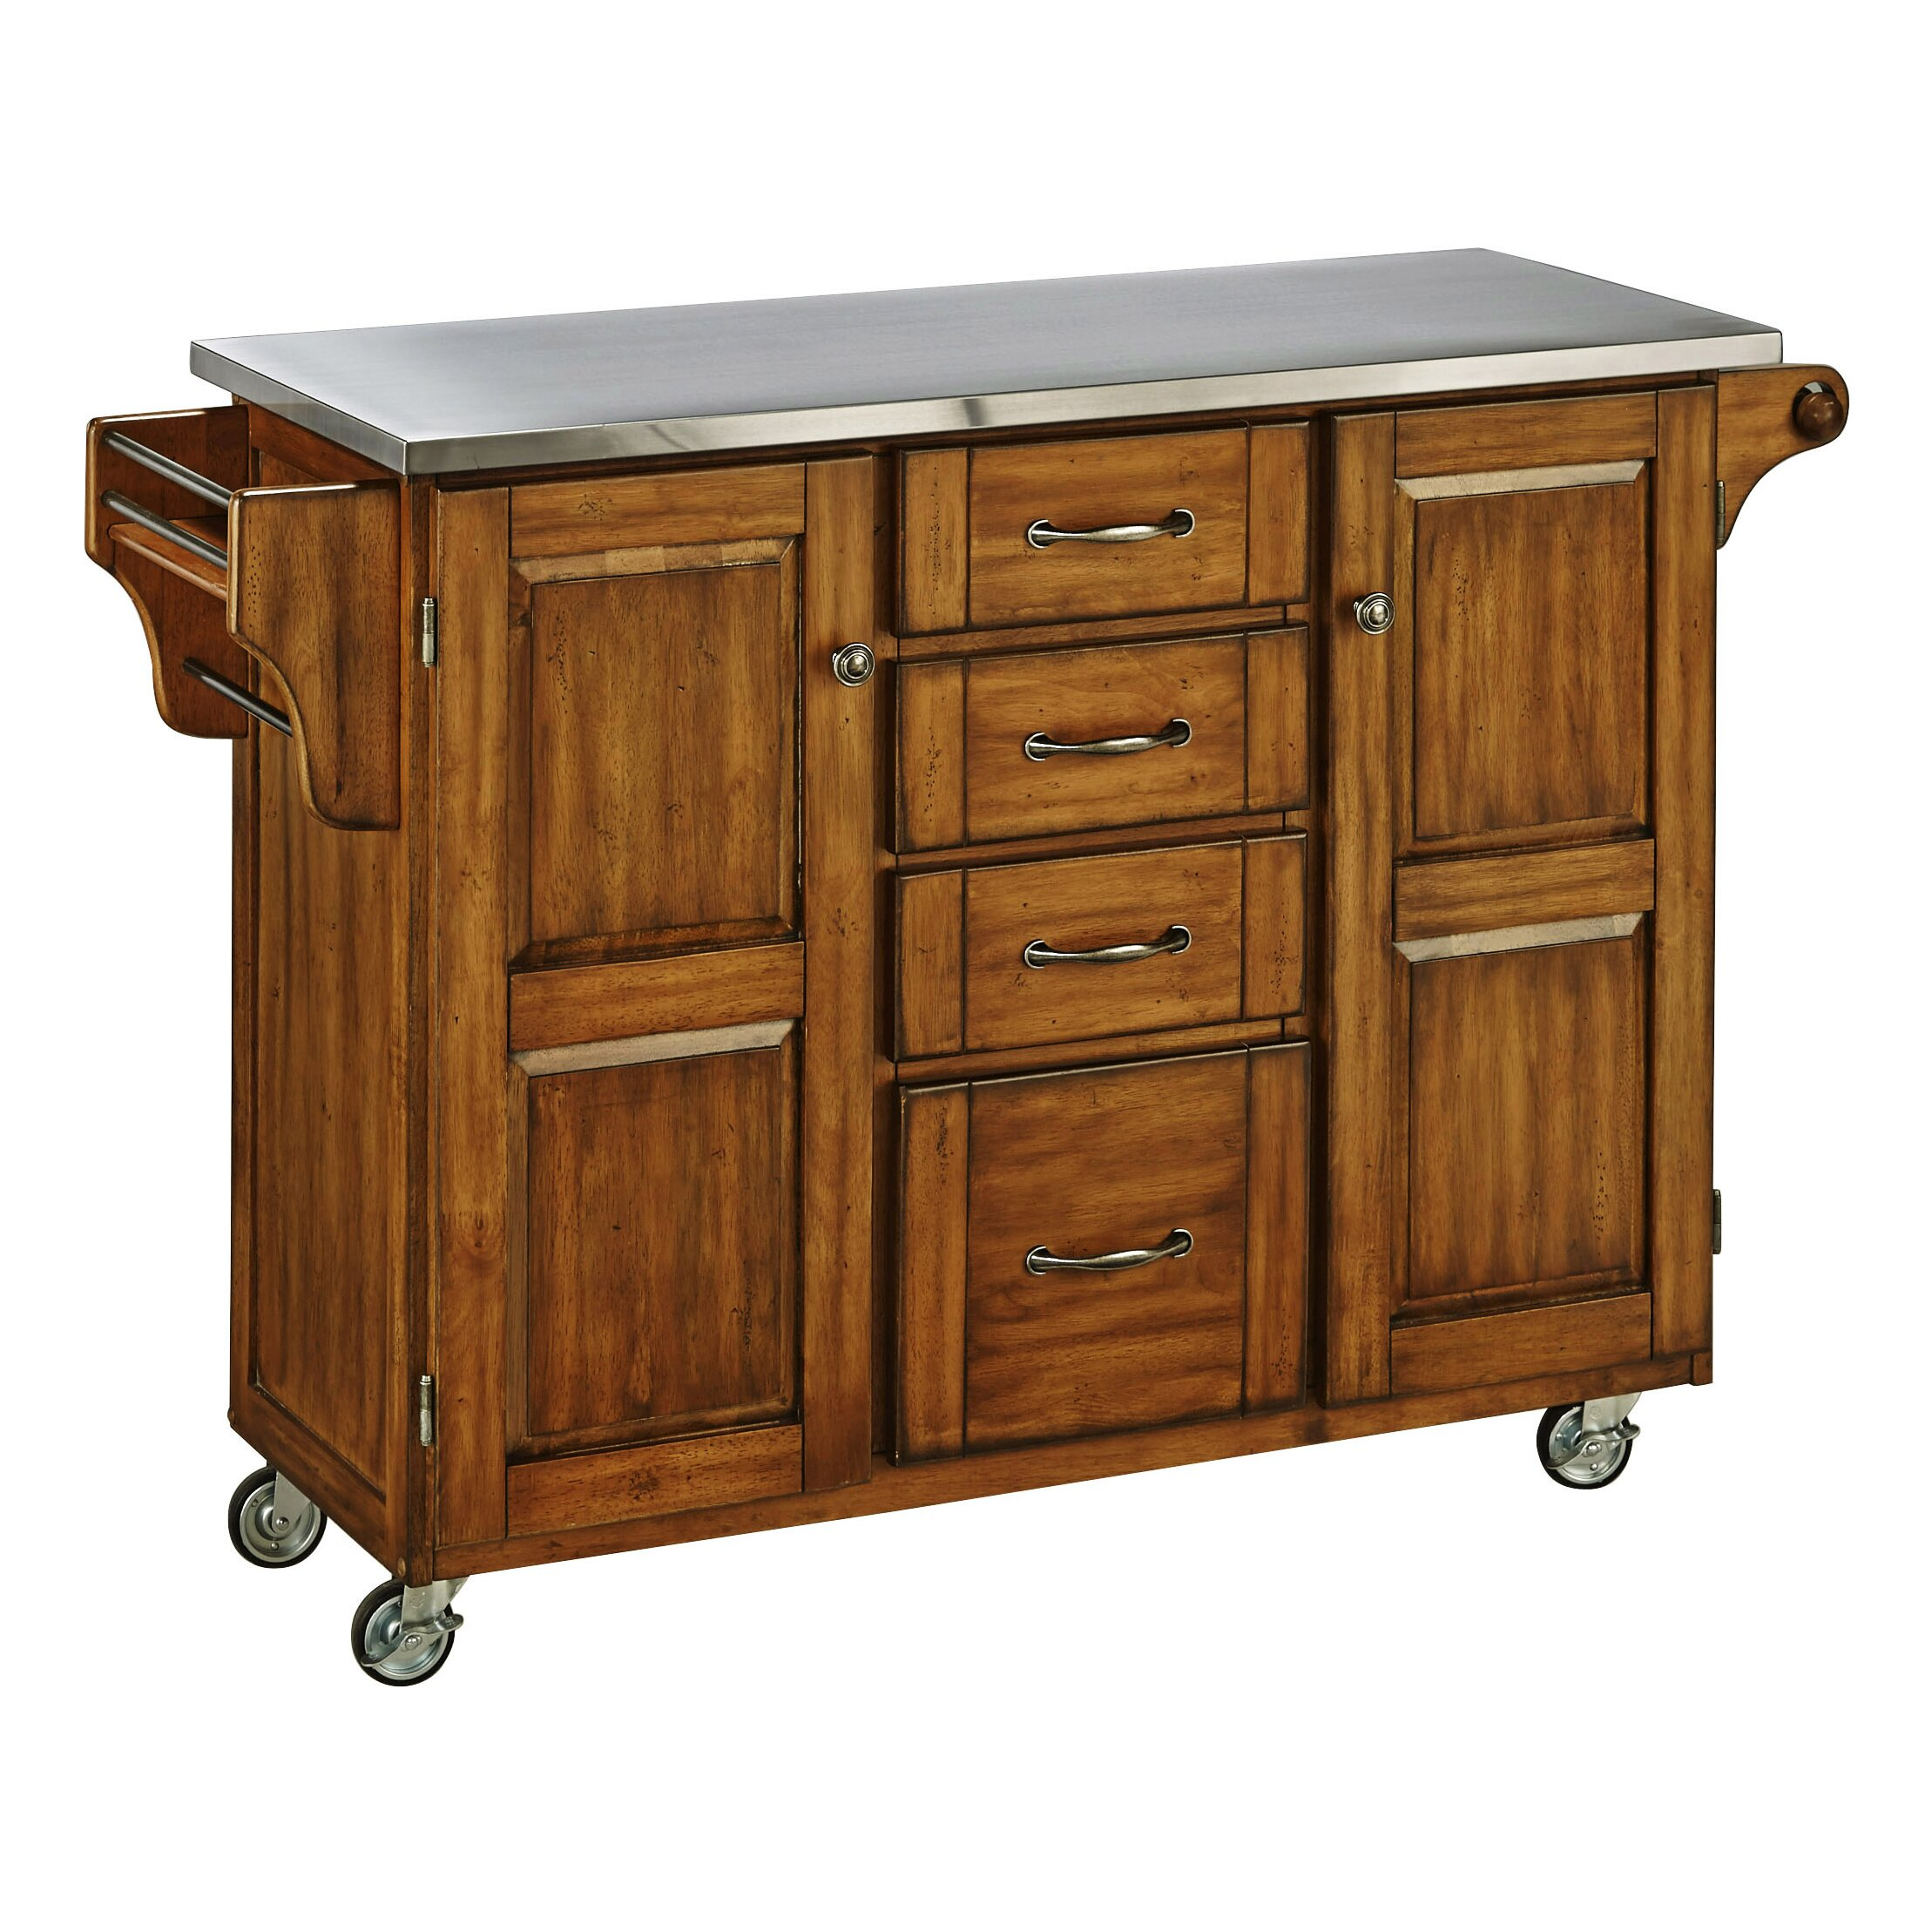 create a cart kitchen island with stainless steel top charlton home bainbridge kitchen cart with stainless steel